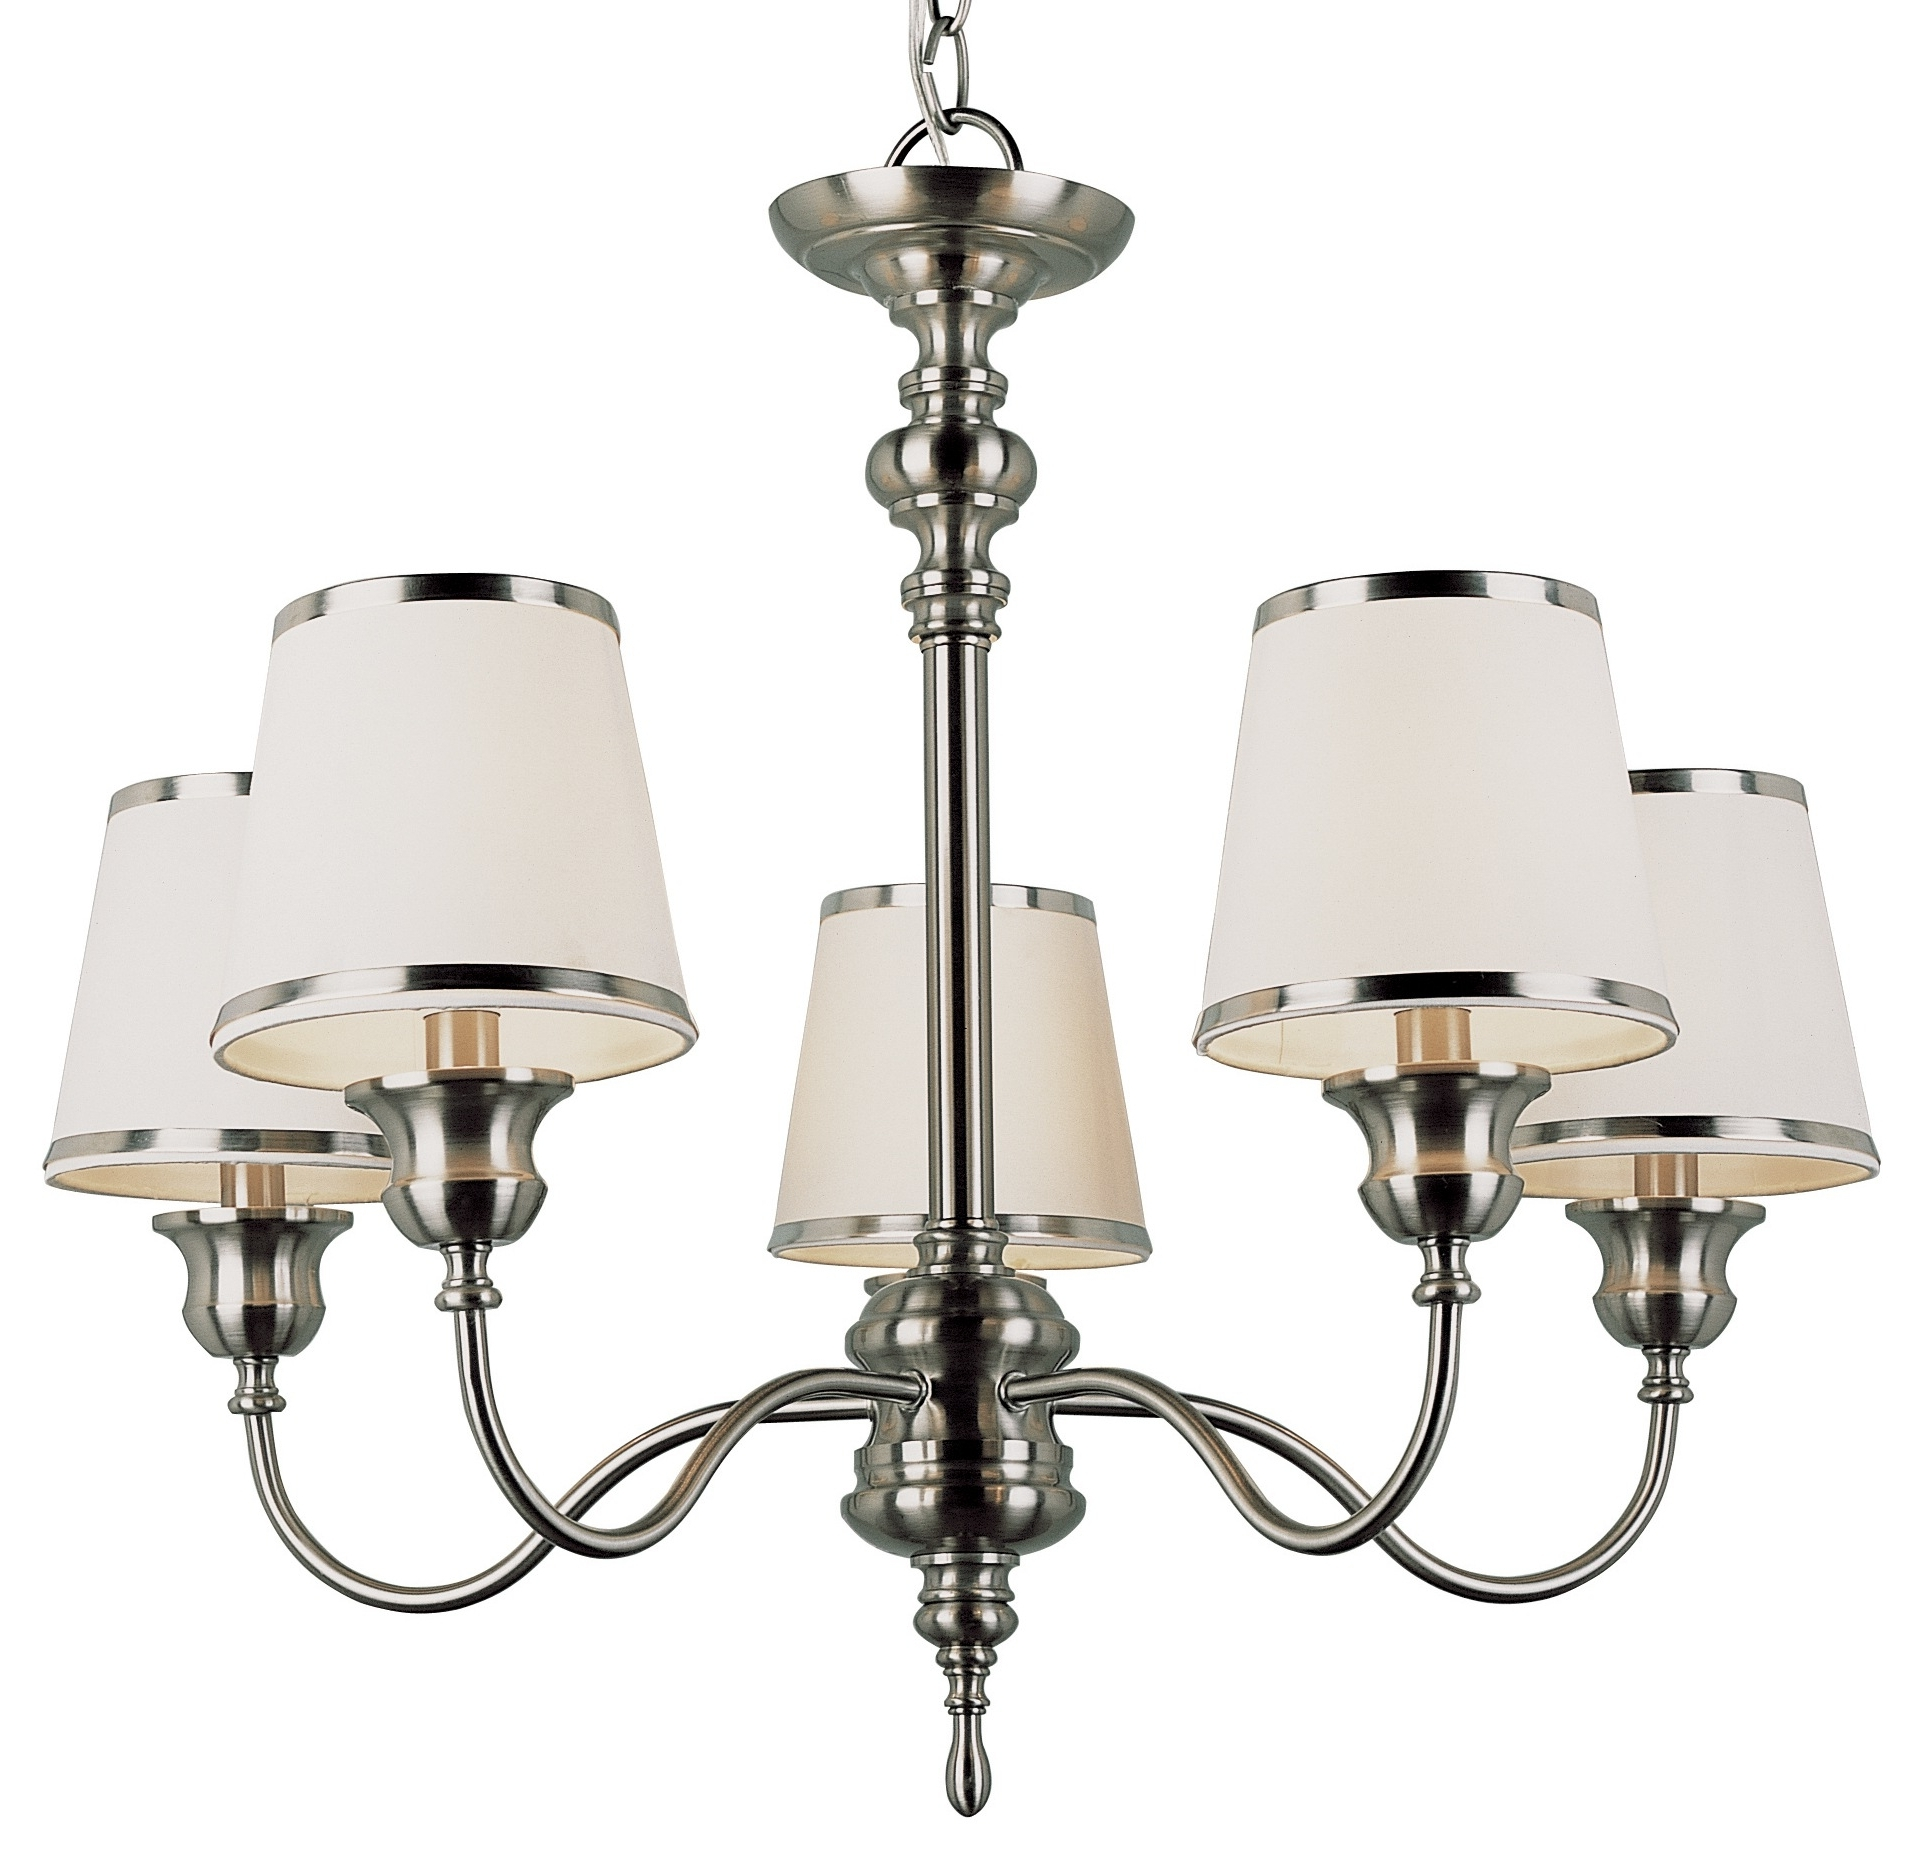 Chandeliers : Sheer Chandelier Lamp Shades Drum Mini Clip On In Most Current Clip On Chandelier Lamp Shades (View 3 of 20)